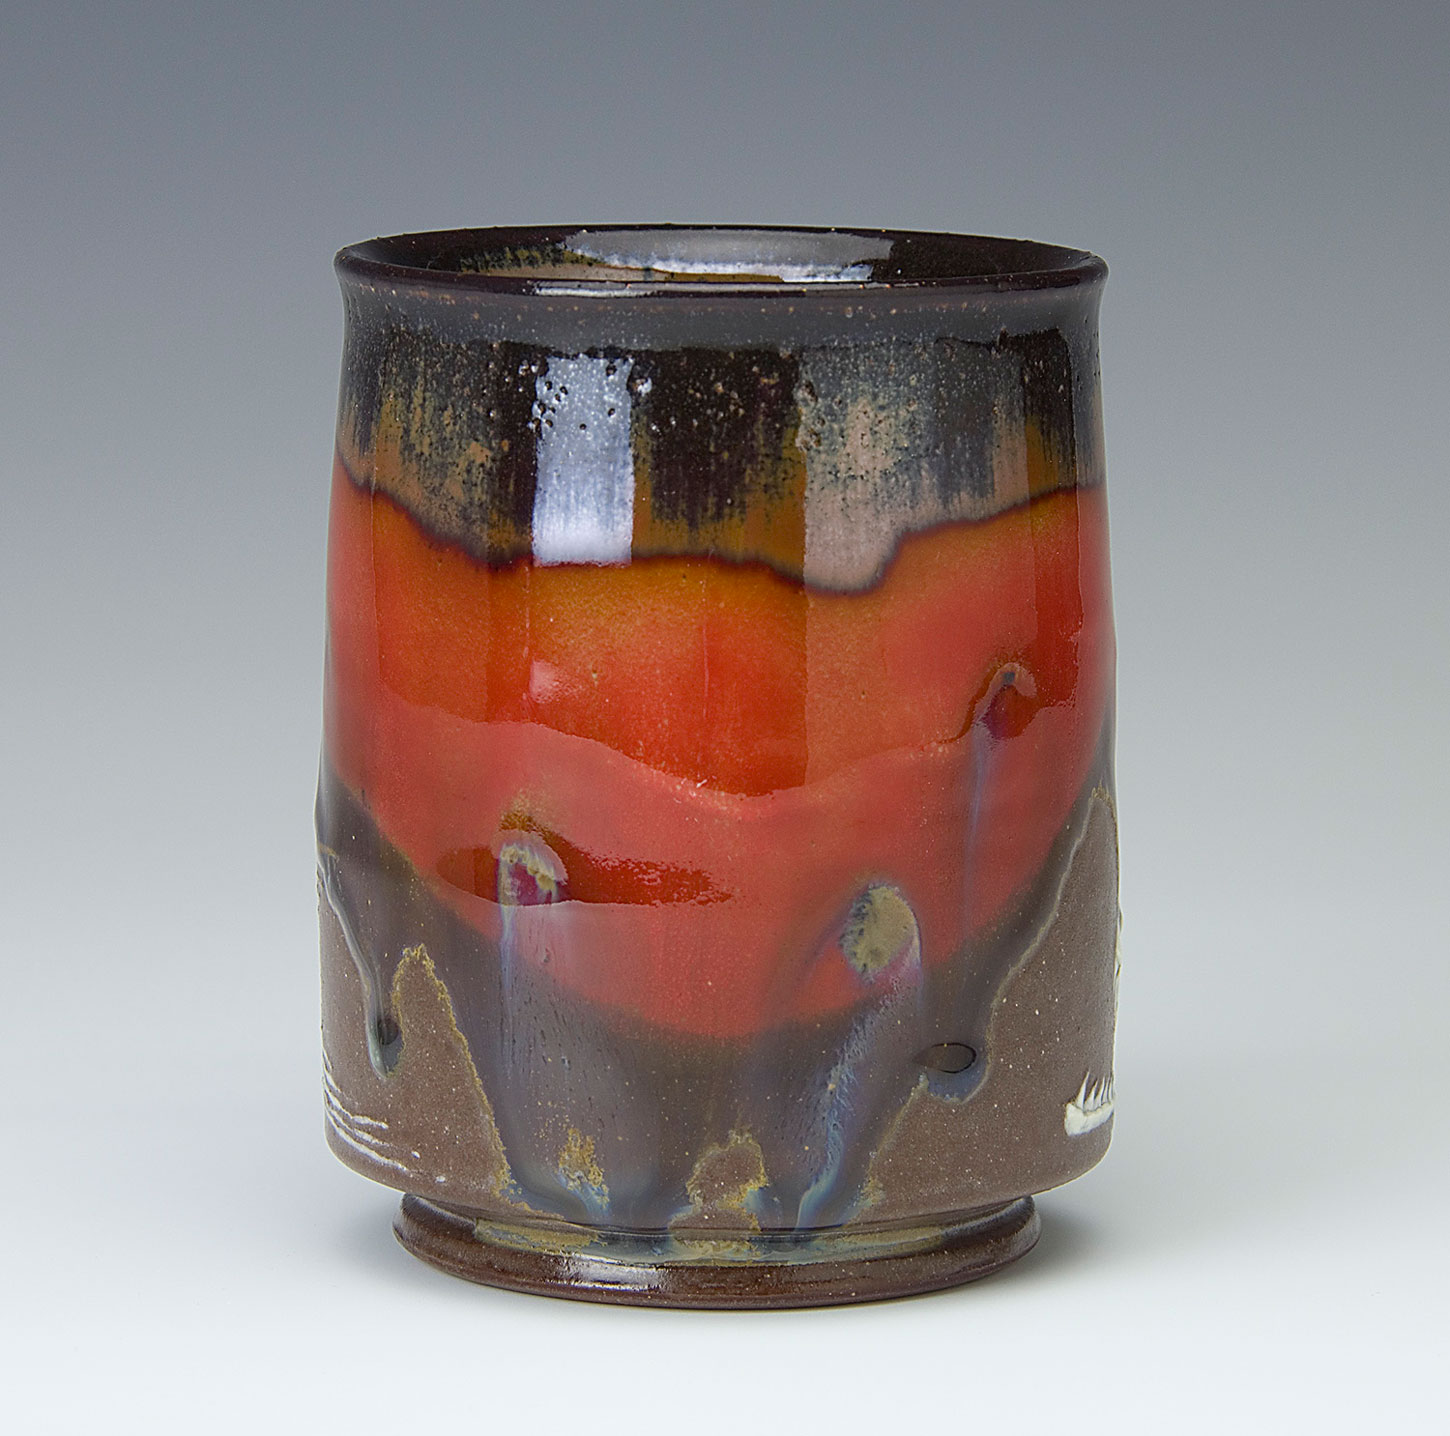 Art-Ceramic-Cup-Bruce-Gholson-Seagrove-Pottery.jpg